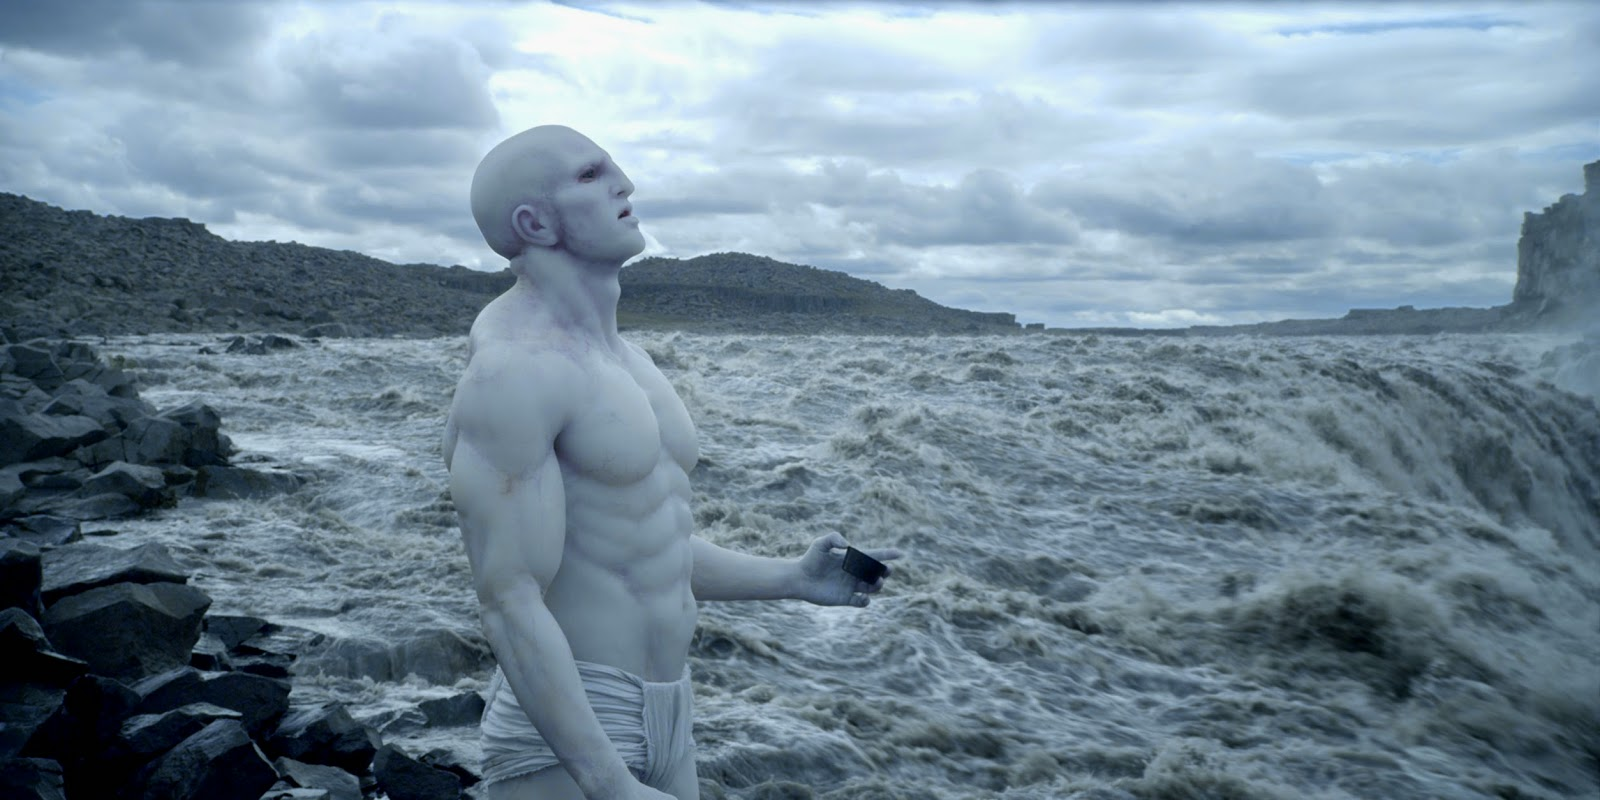 Prometheus - Yes Iceland really is worth visiting!